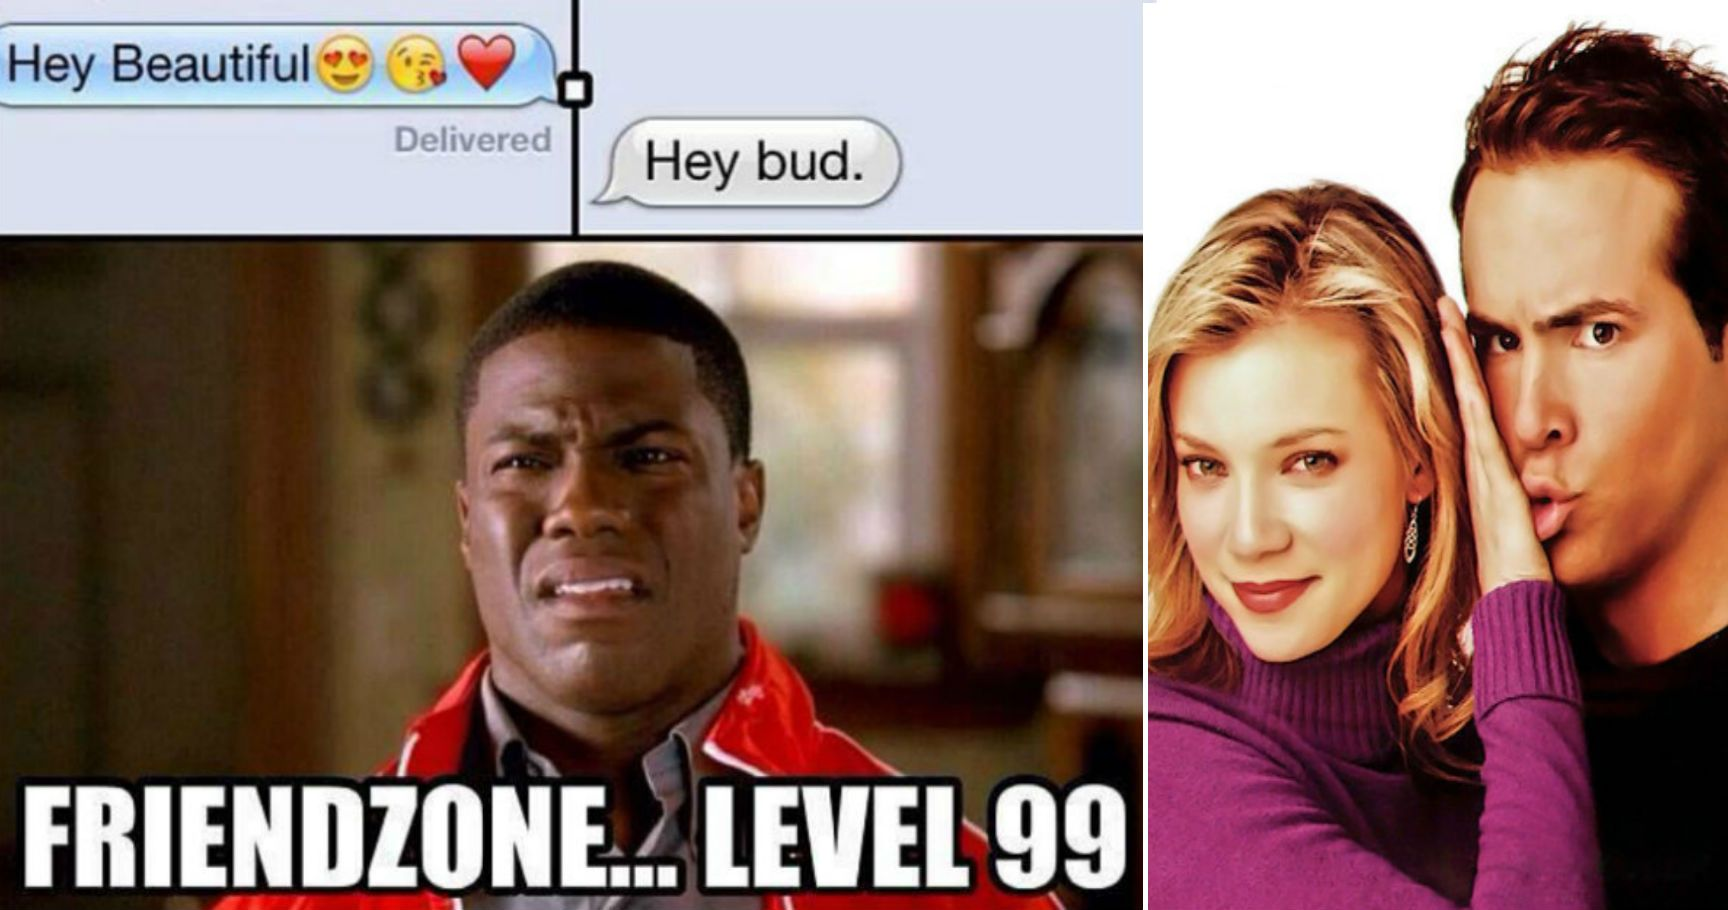 Tragic yet funny friend zone memes we can all relate to